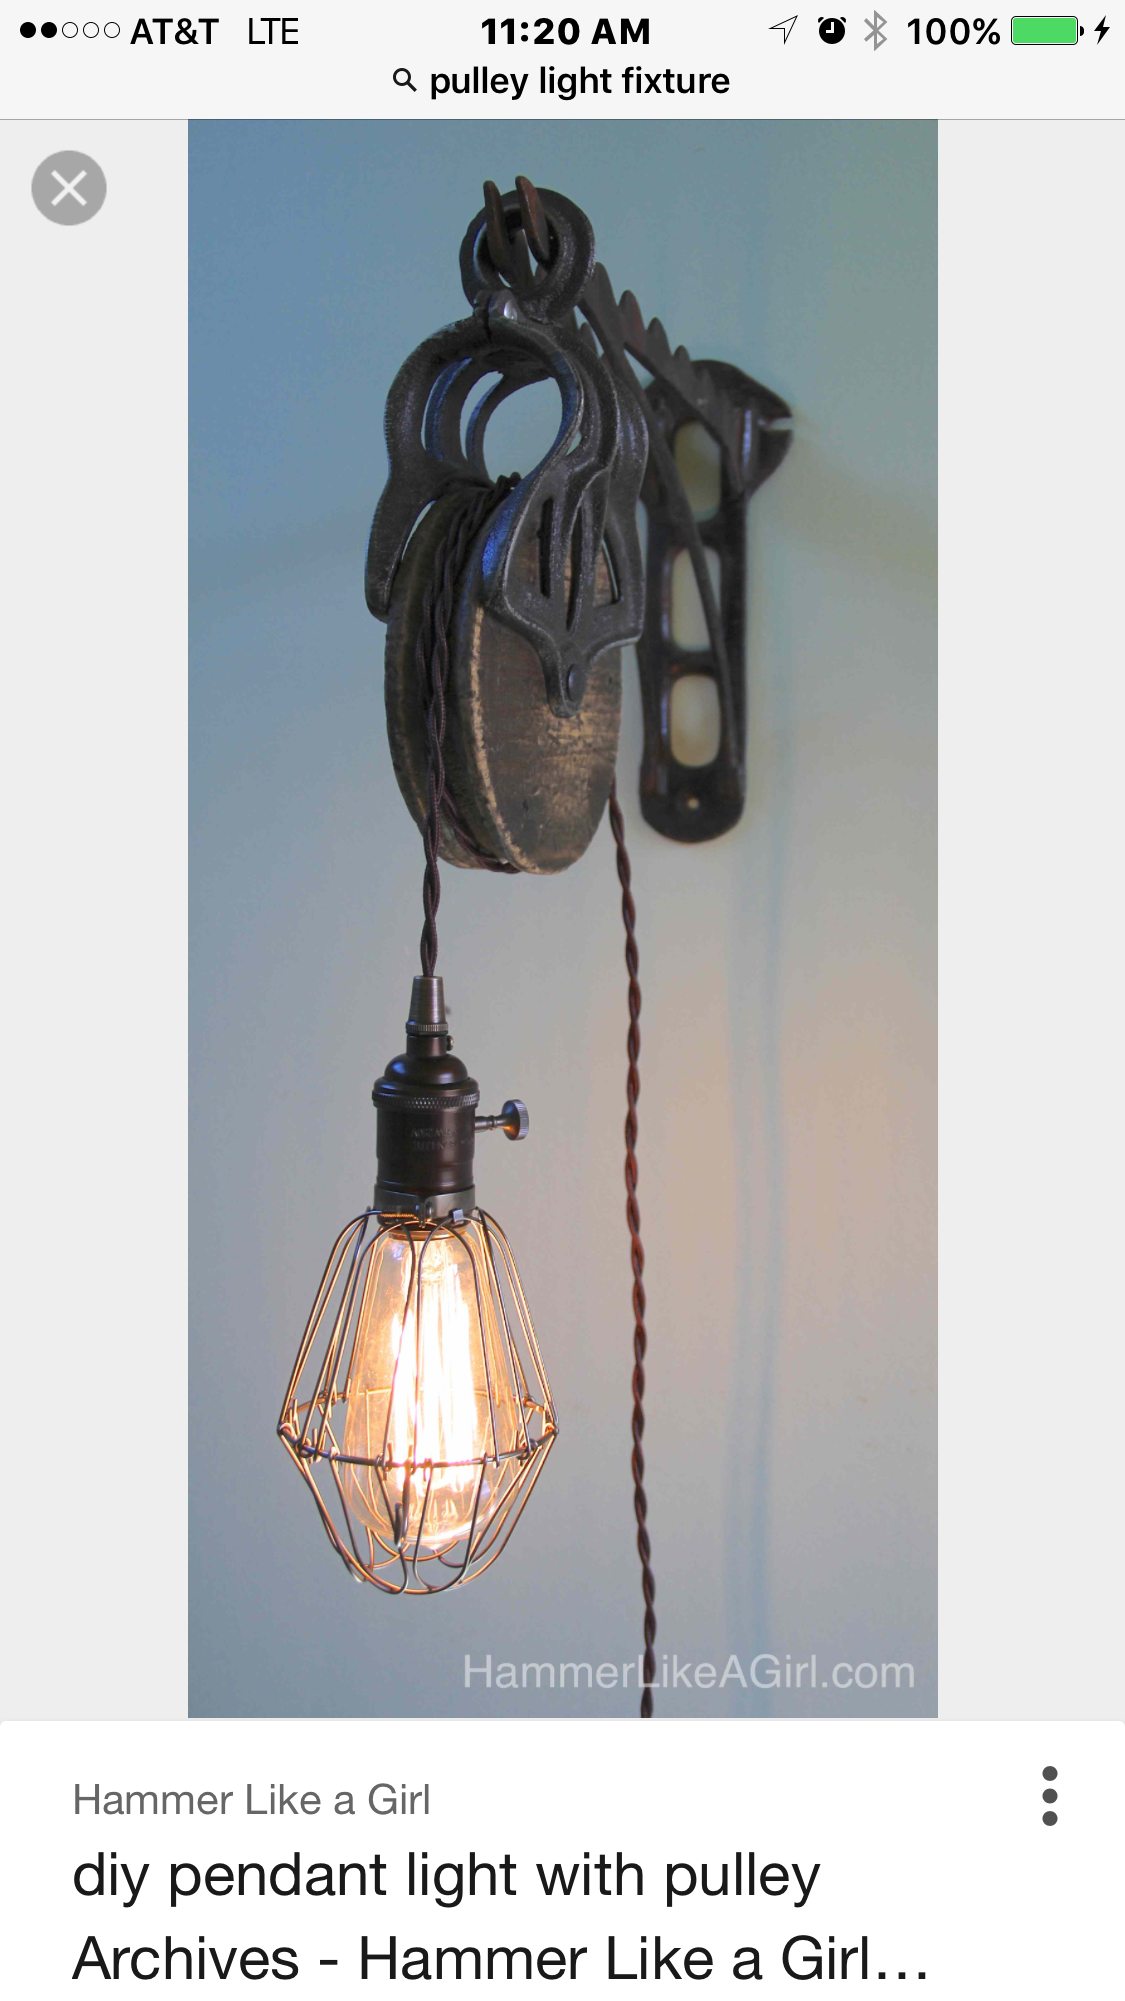 Pin By Manon Proteau On Luminaire Pulley Light Fixture Diy Pendant Light Pulley Light